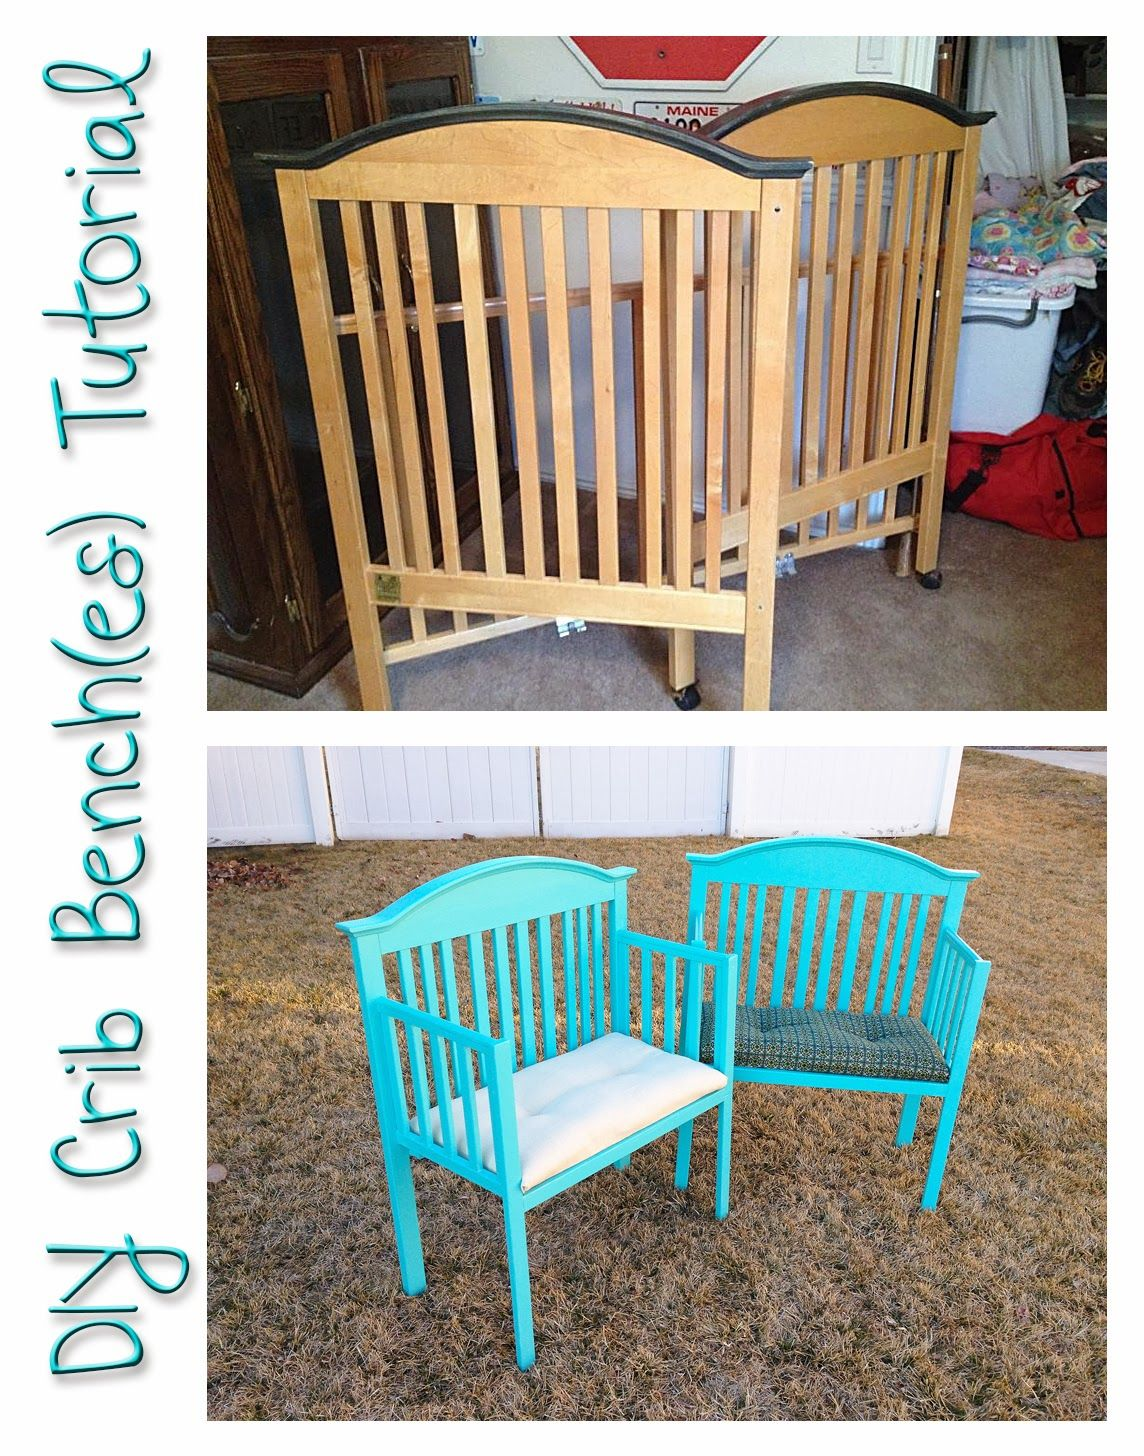 Used crib for sale edmonton - Playing It Cooley Diy Crib Bench Tutorial